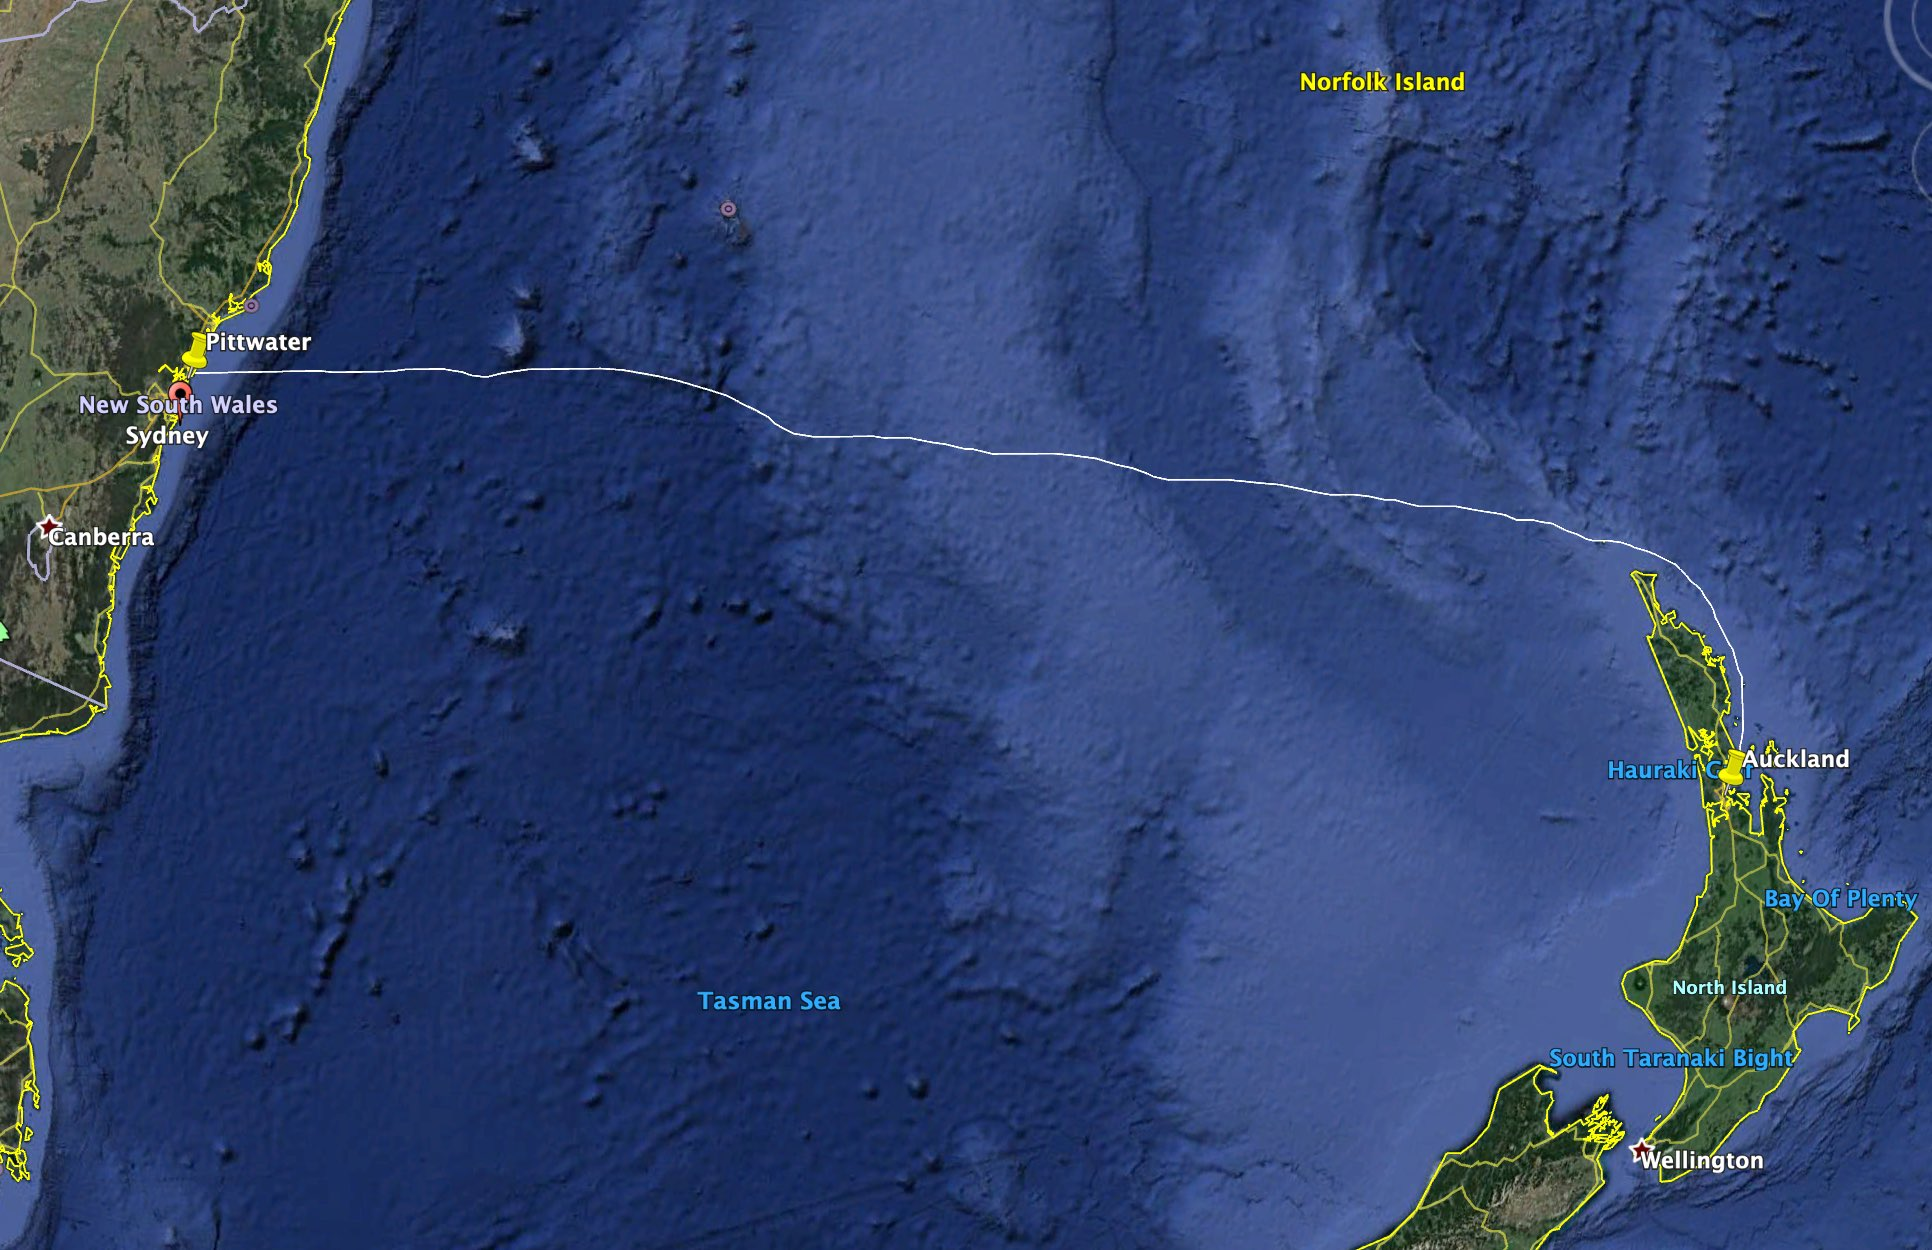 The 1,250nm route from Sydney, Australia to Auckland, New Zealand across the infamous Tasman Sea.